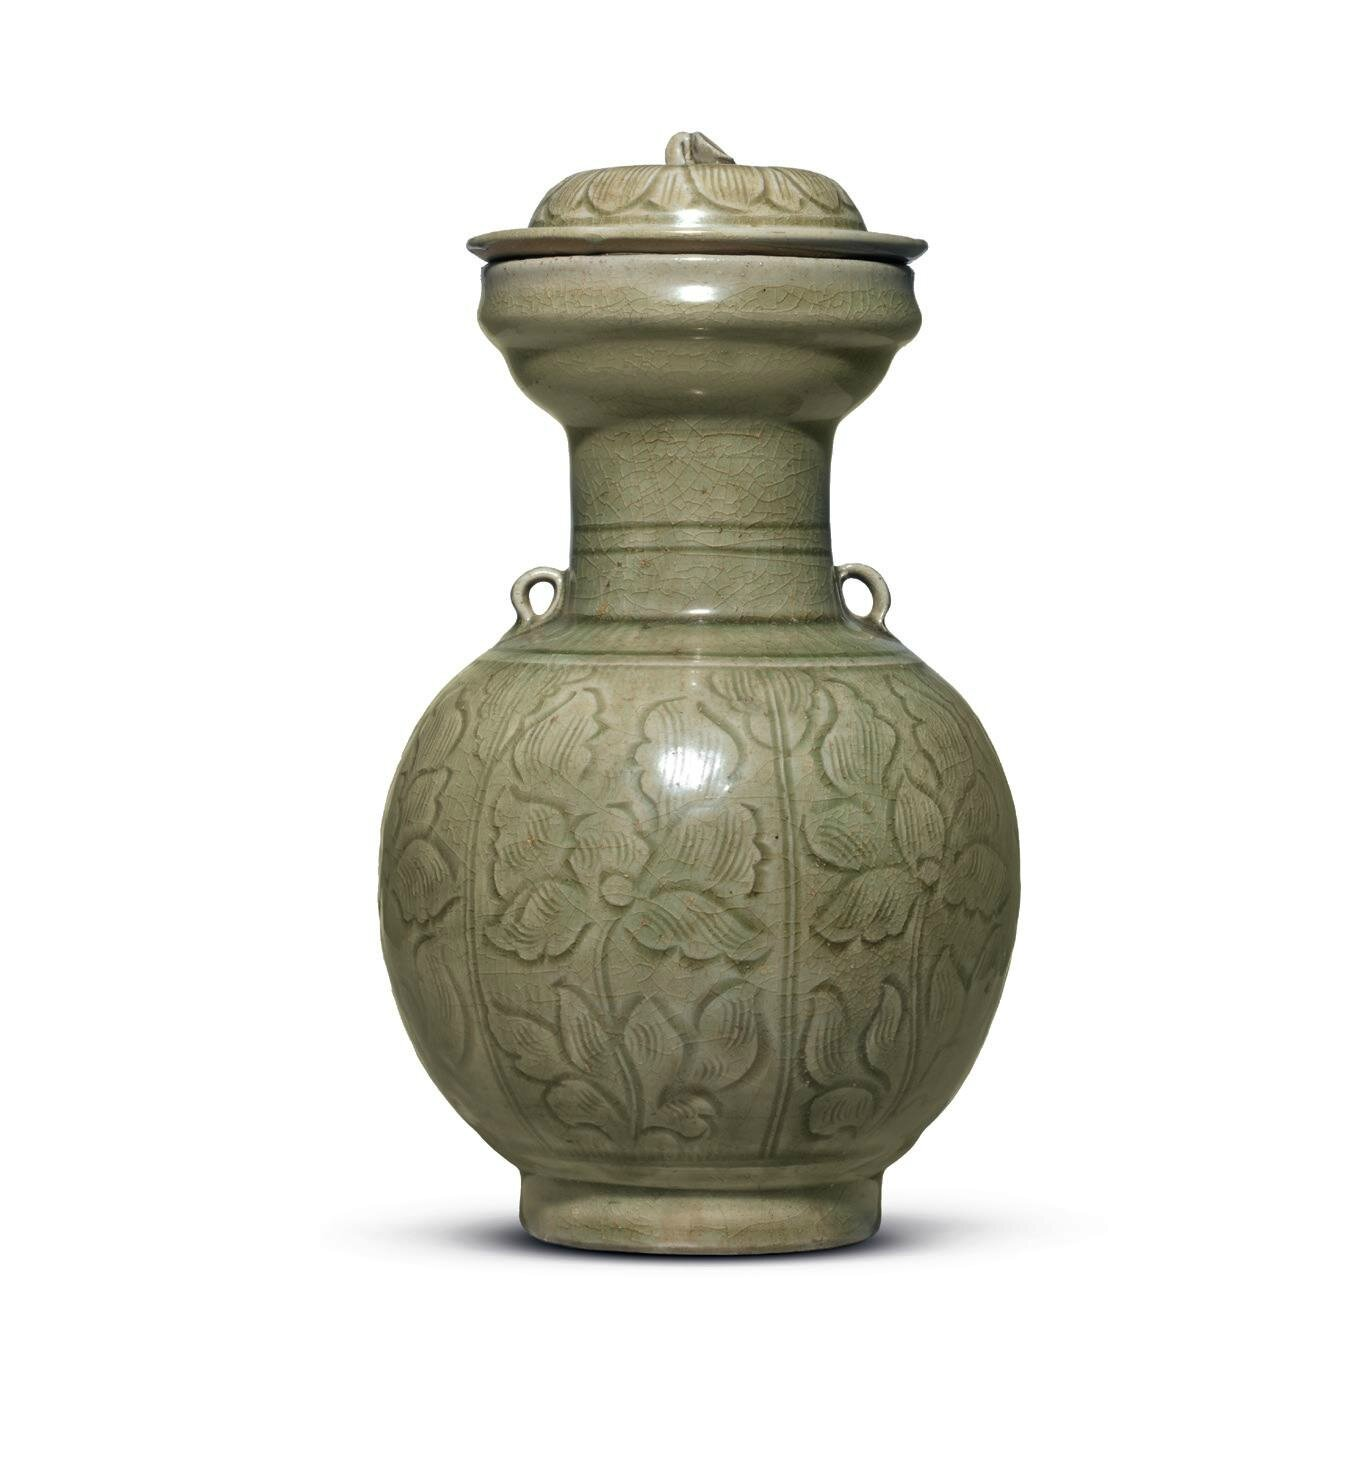 A rare carved Longquan celadon vase and cover, Northern Song dynasty, 11th-12th century